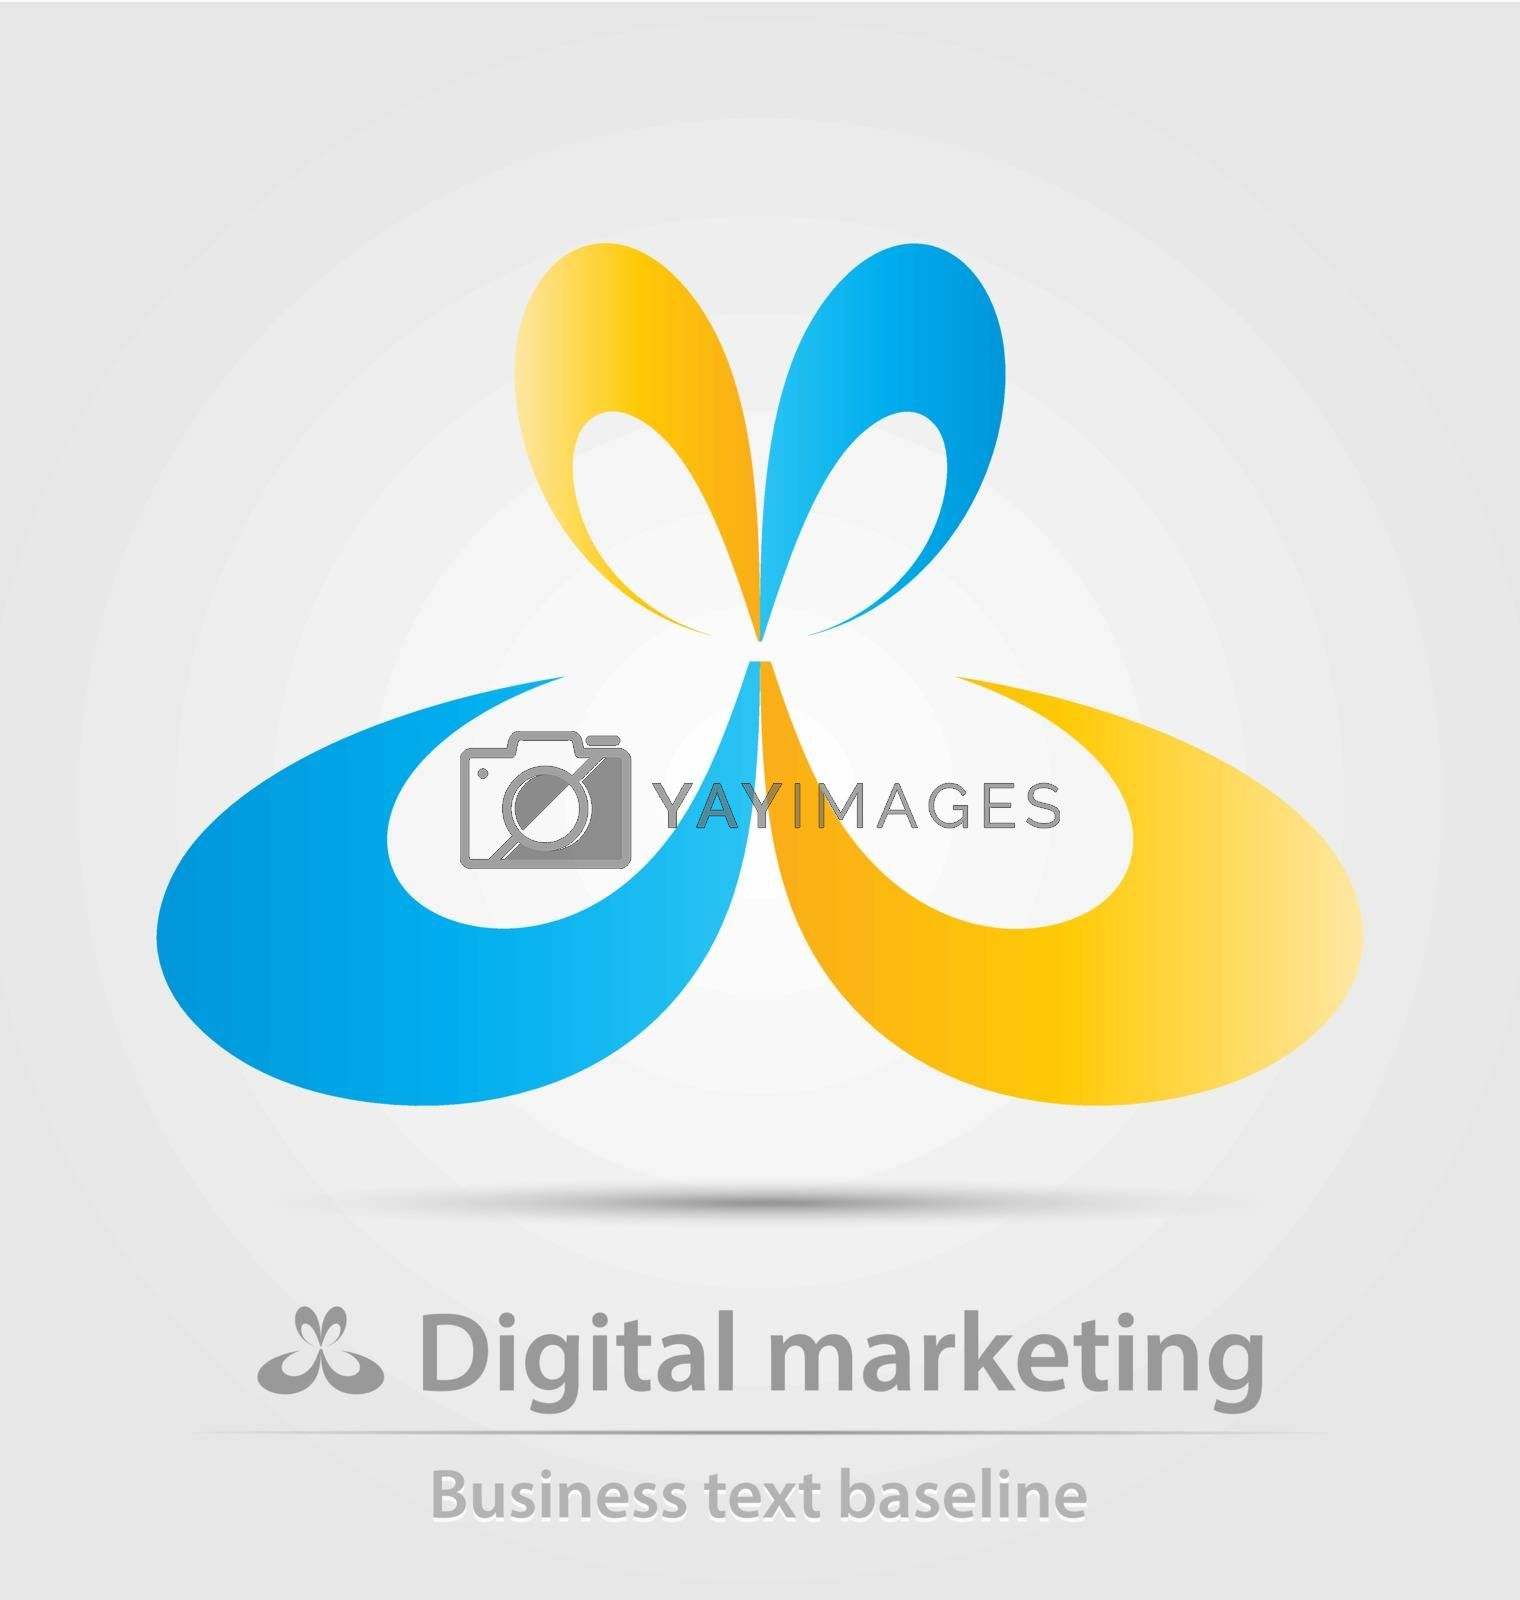 Digital marketing business icon for creative design